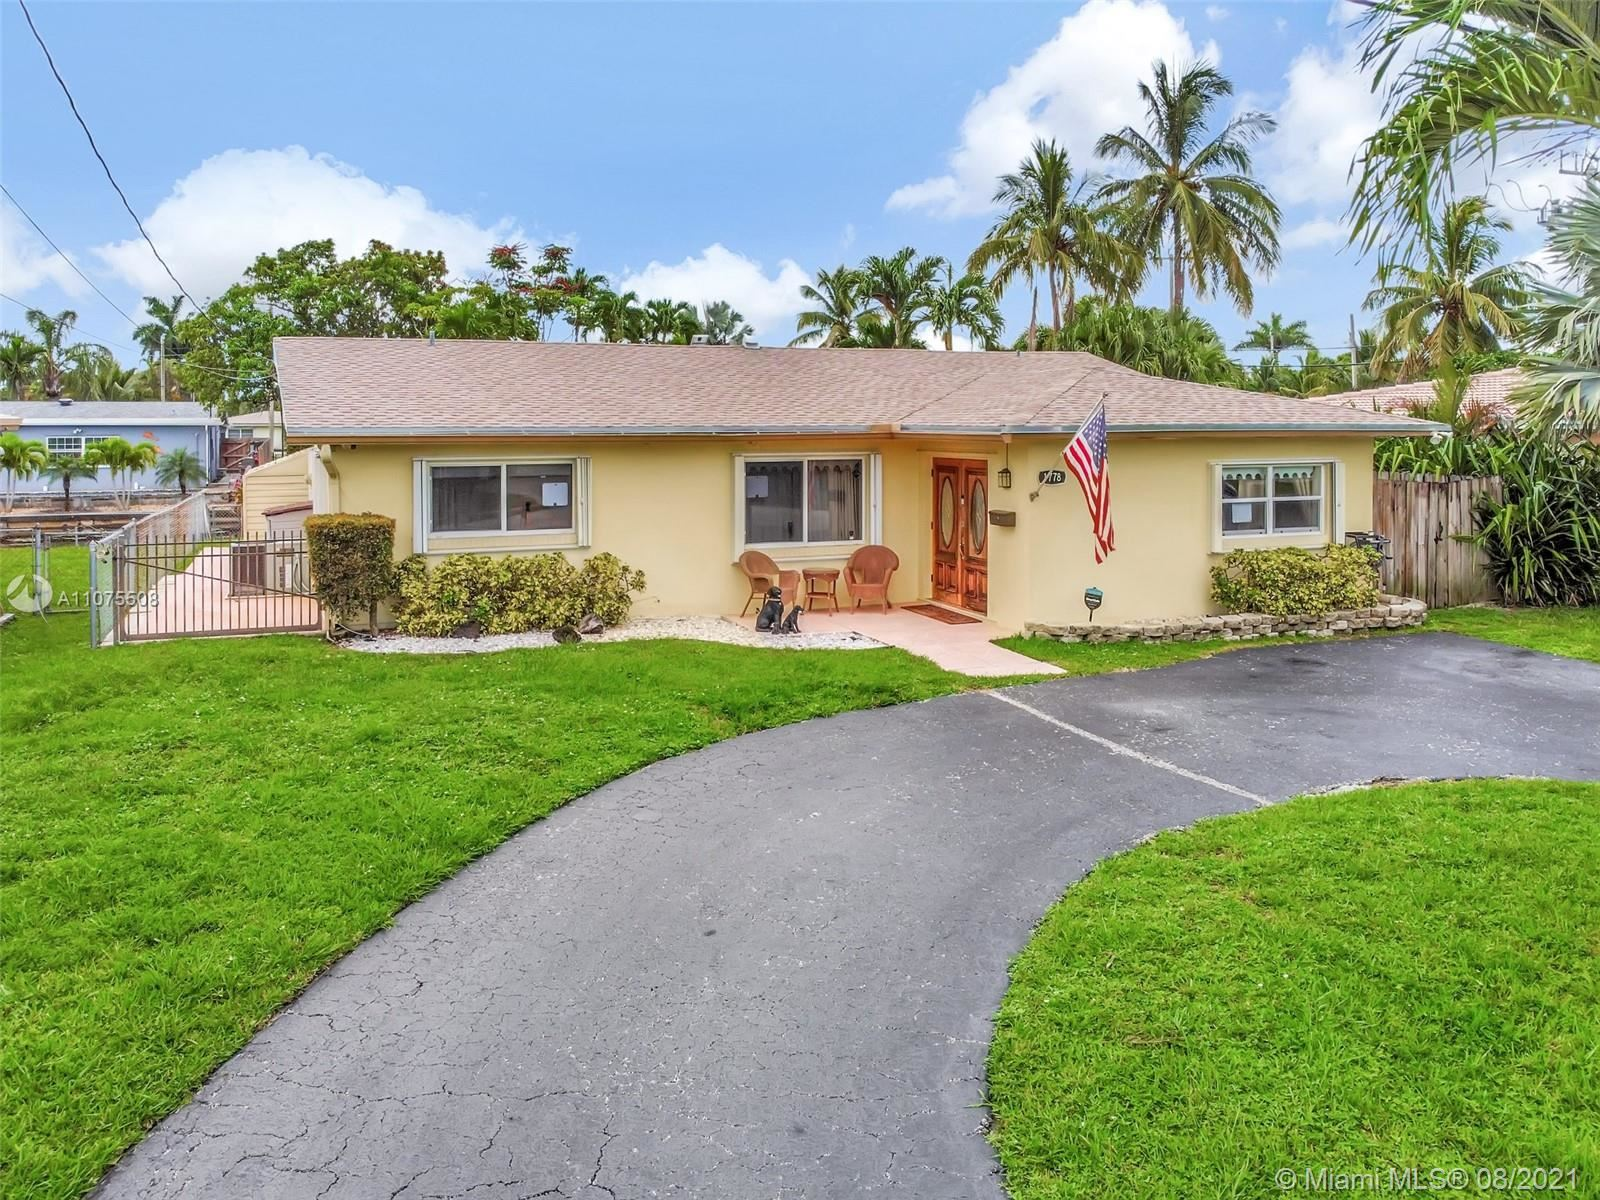 1778 NW 38th St, Oakland Park, FL 33309 - #: A11075508